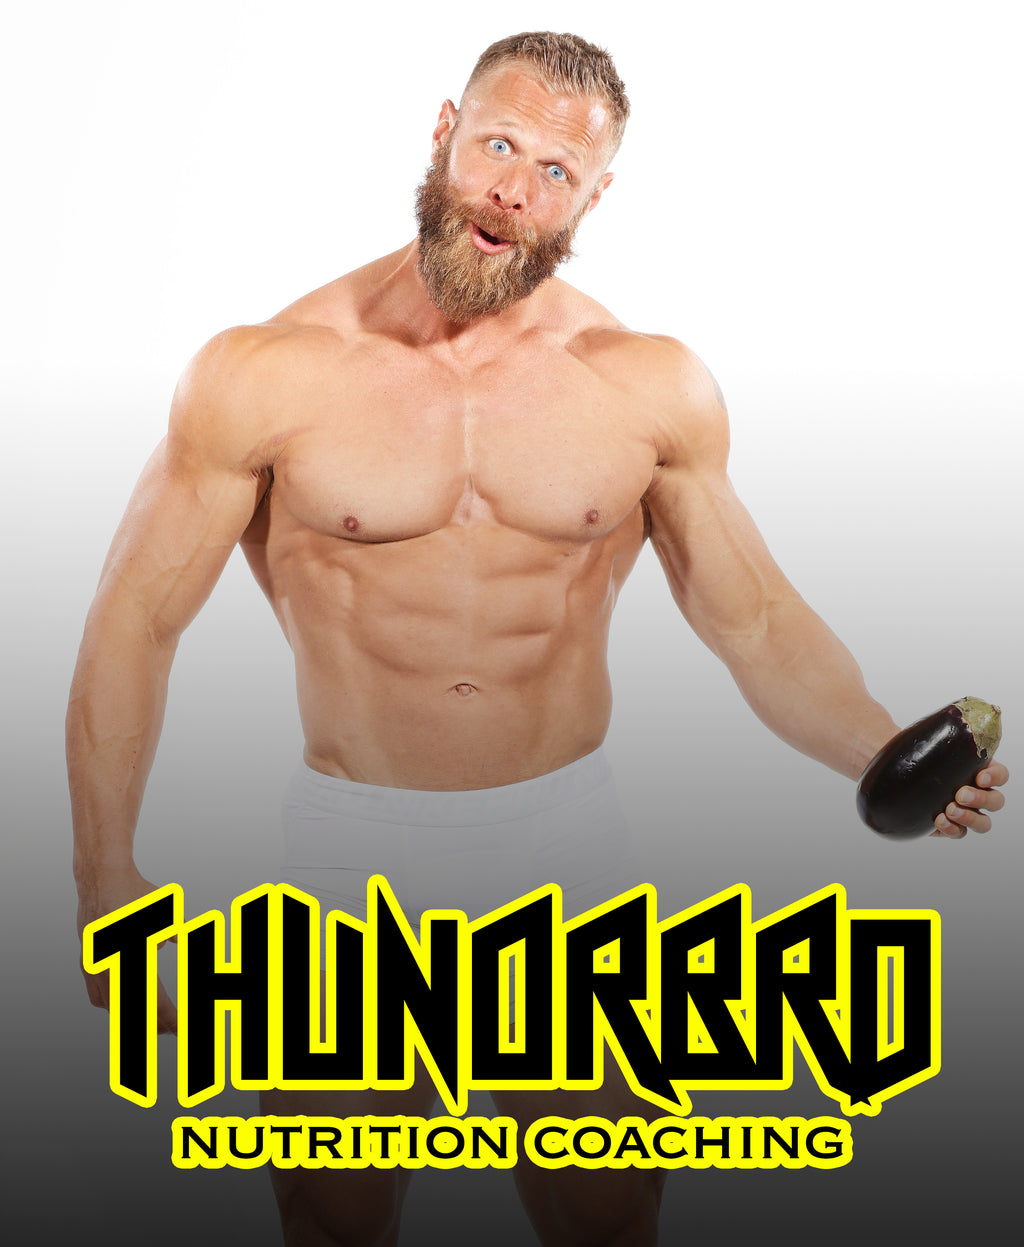 Thundrbro Nutrition Coaching